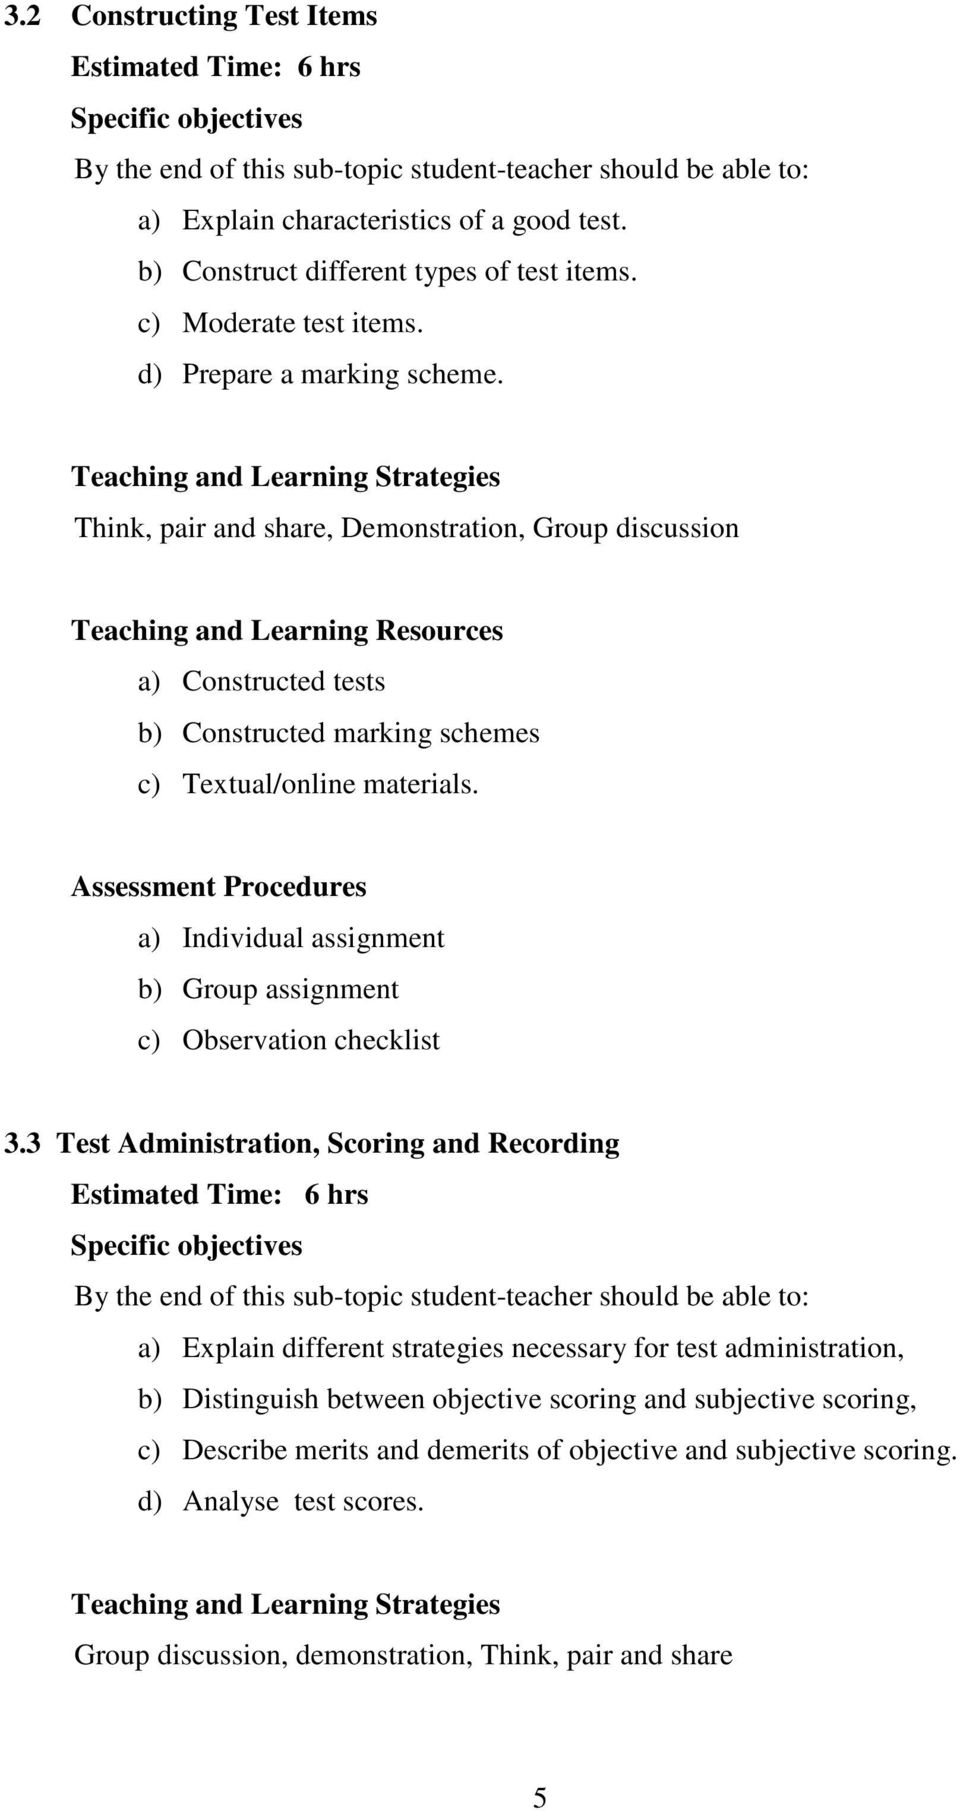 the united republic of tanzania ministry of education and a individual assignment b group assignment c observation checklist 3